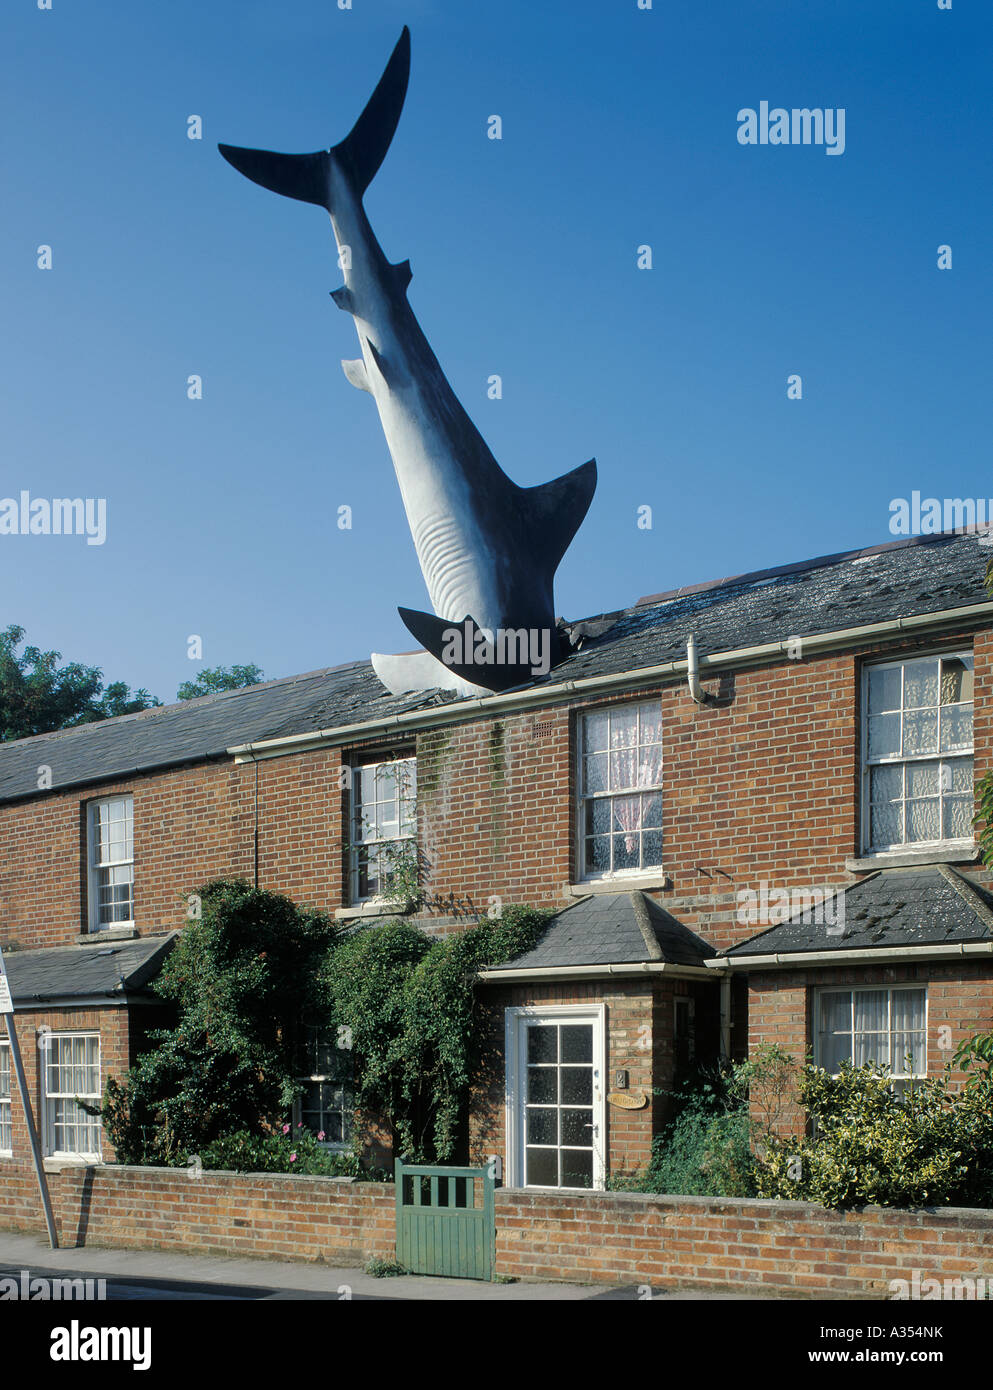 L'art moderne sculpture de Shark en chambre , Oxford , Angleterre Photo Stock